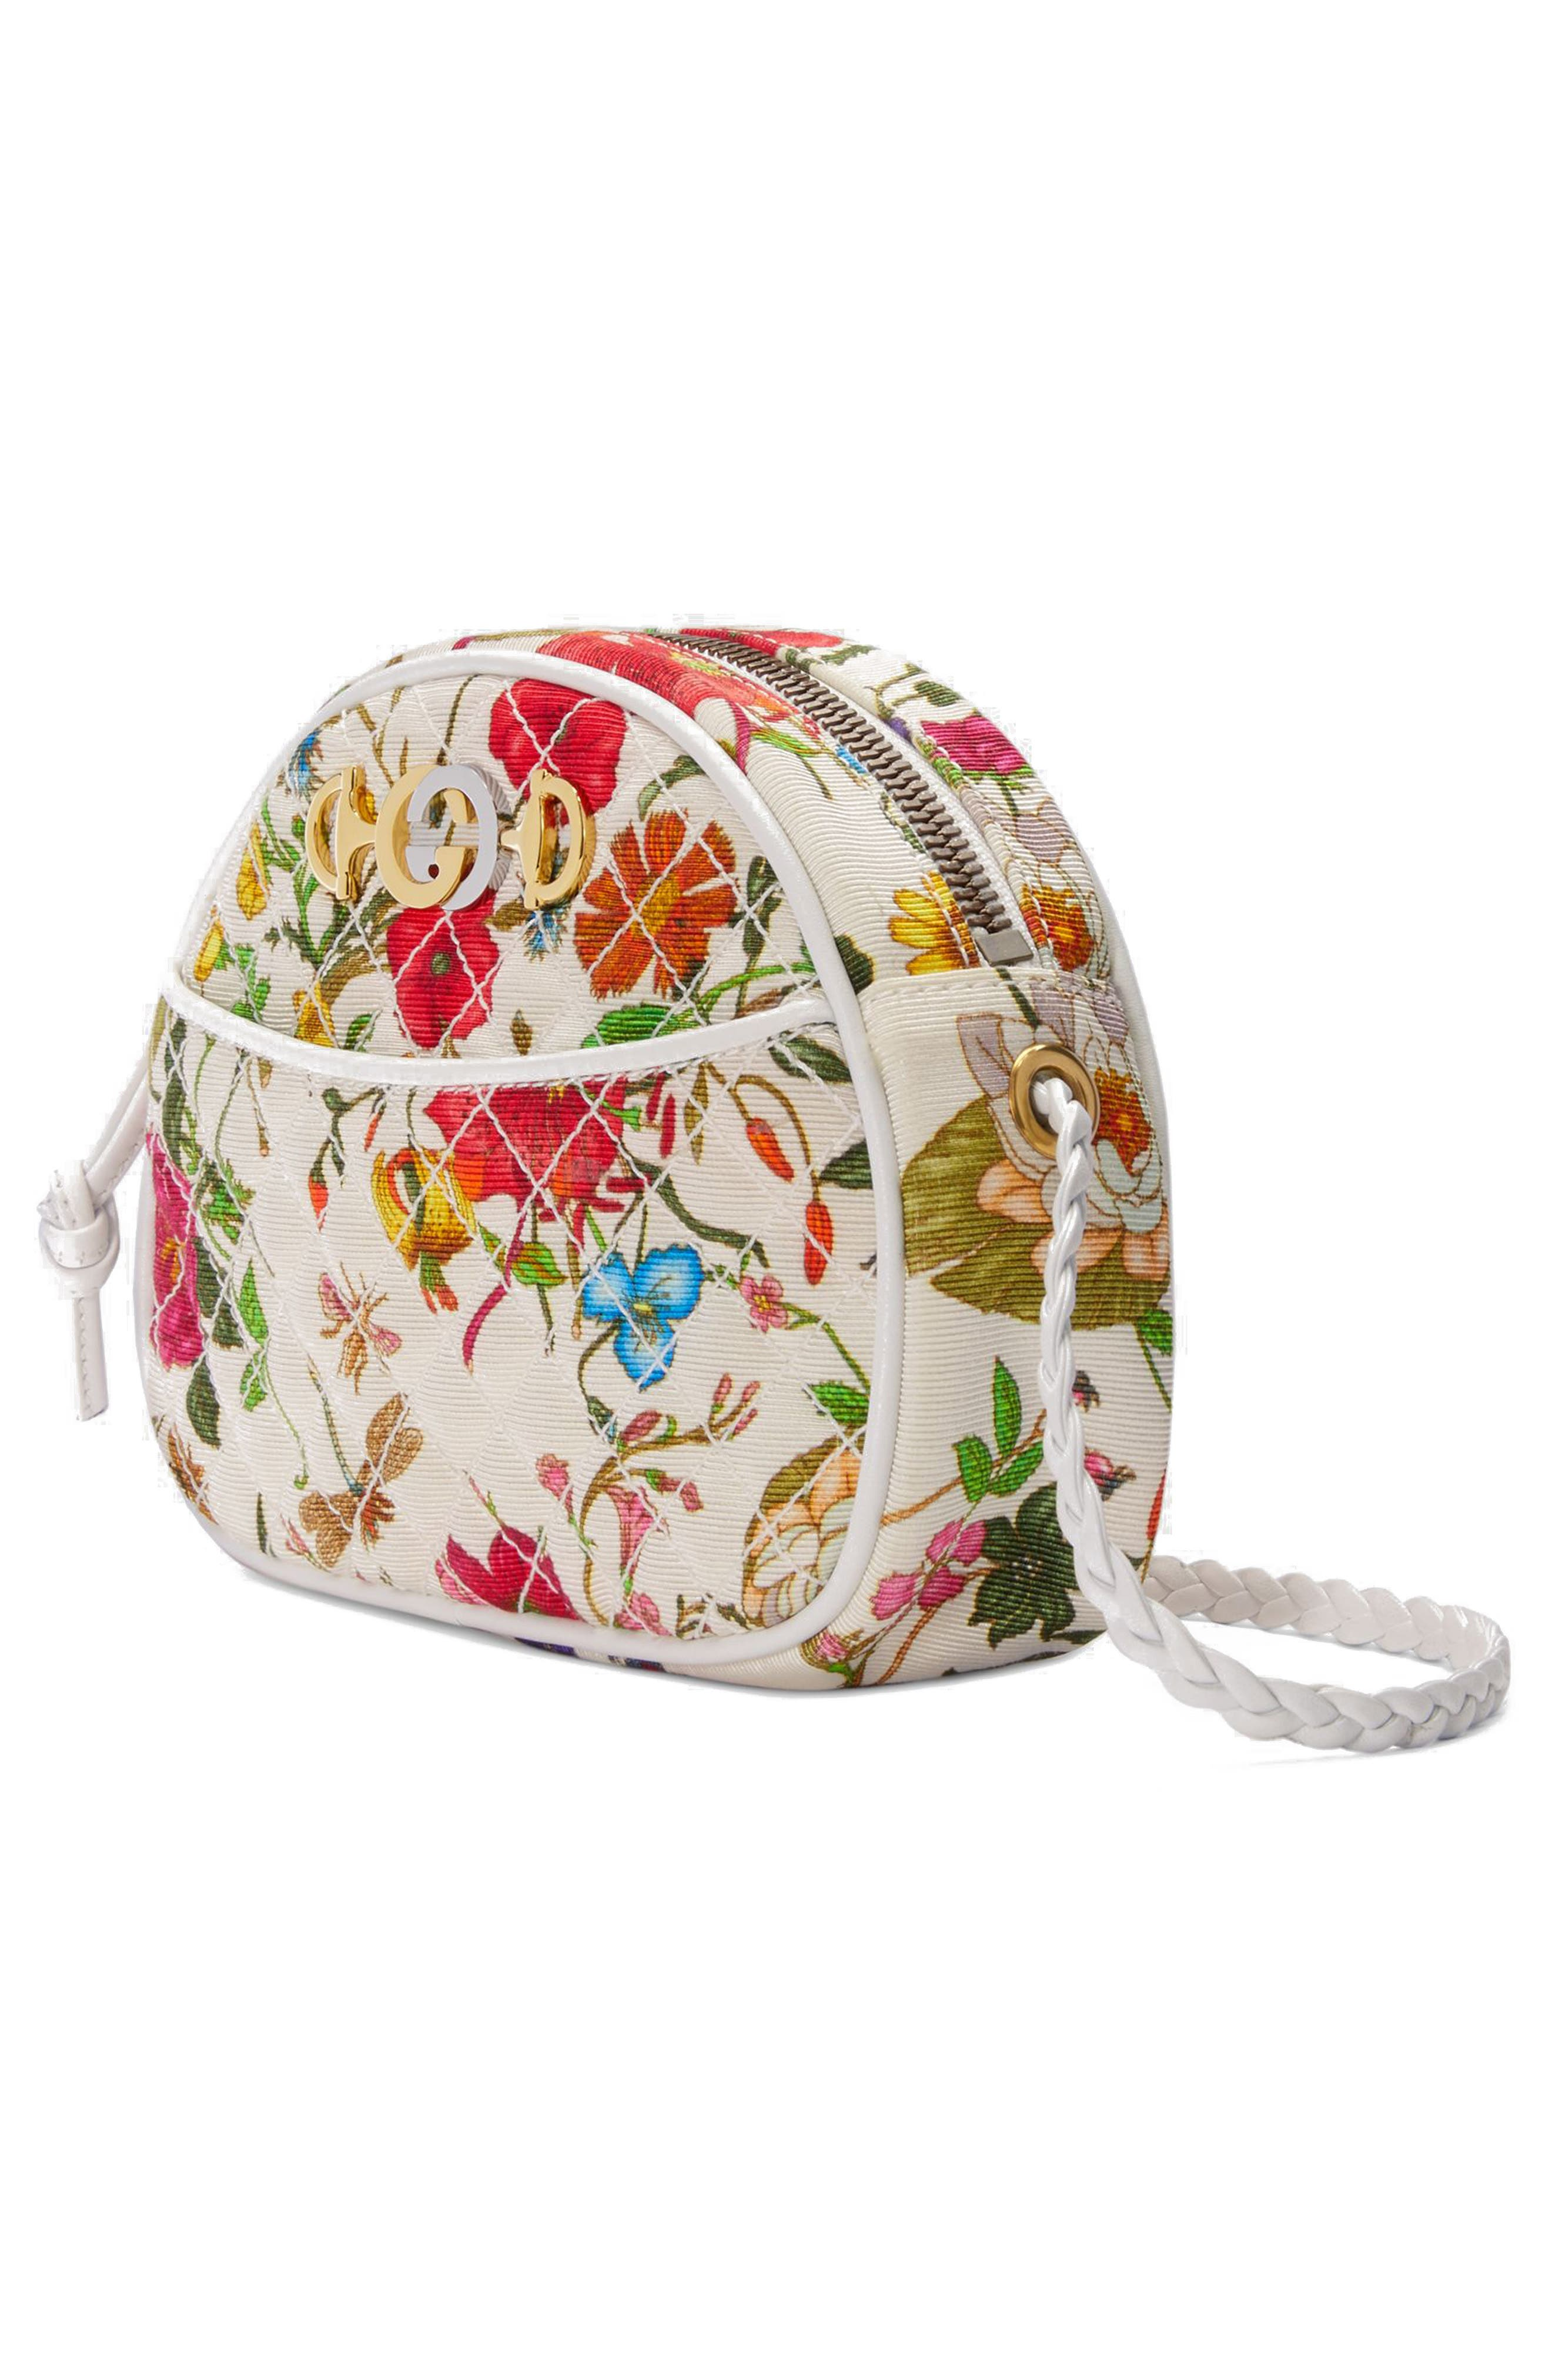 Quilted Floral Print Dome Crossbody Bag,                             Alternate thumbnail 4, color,                             WHITE MULTI